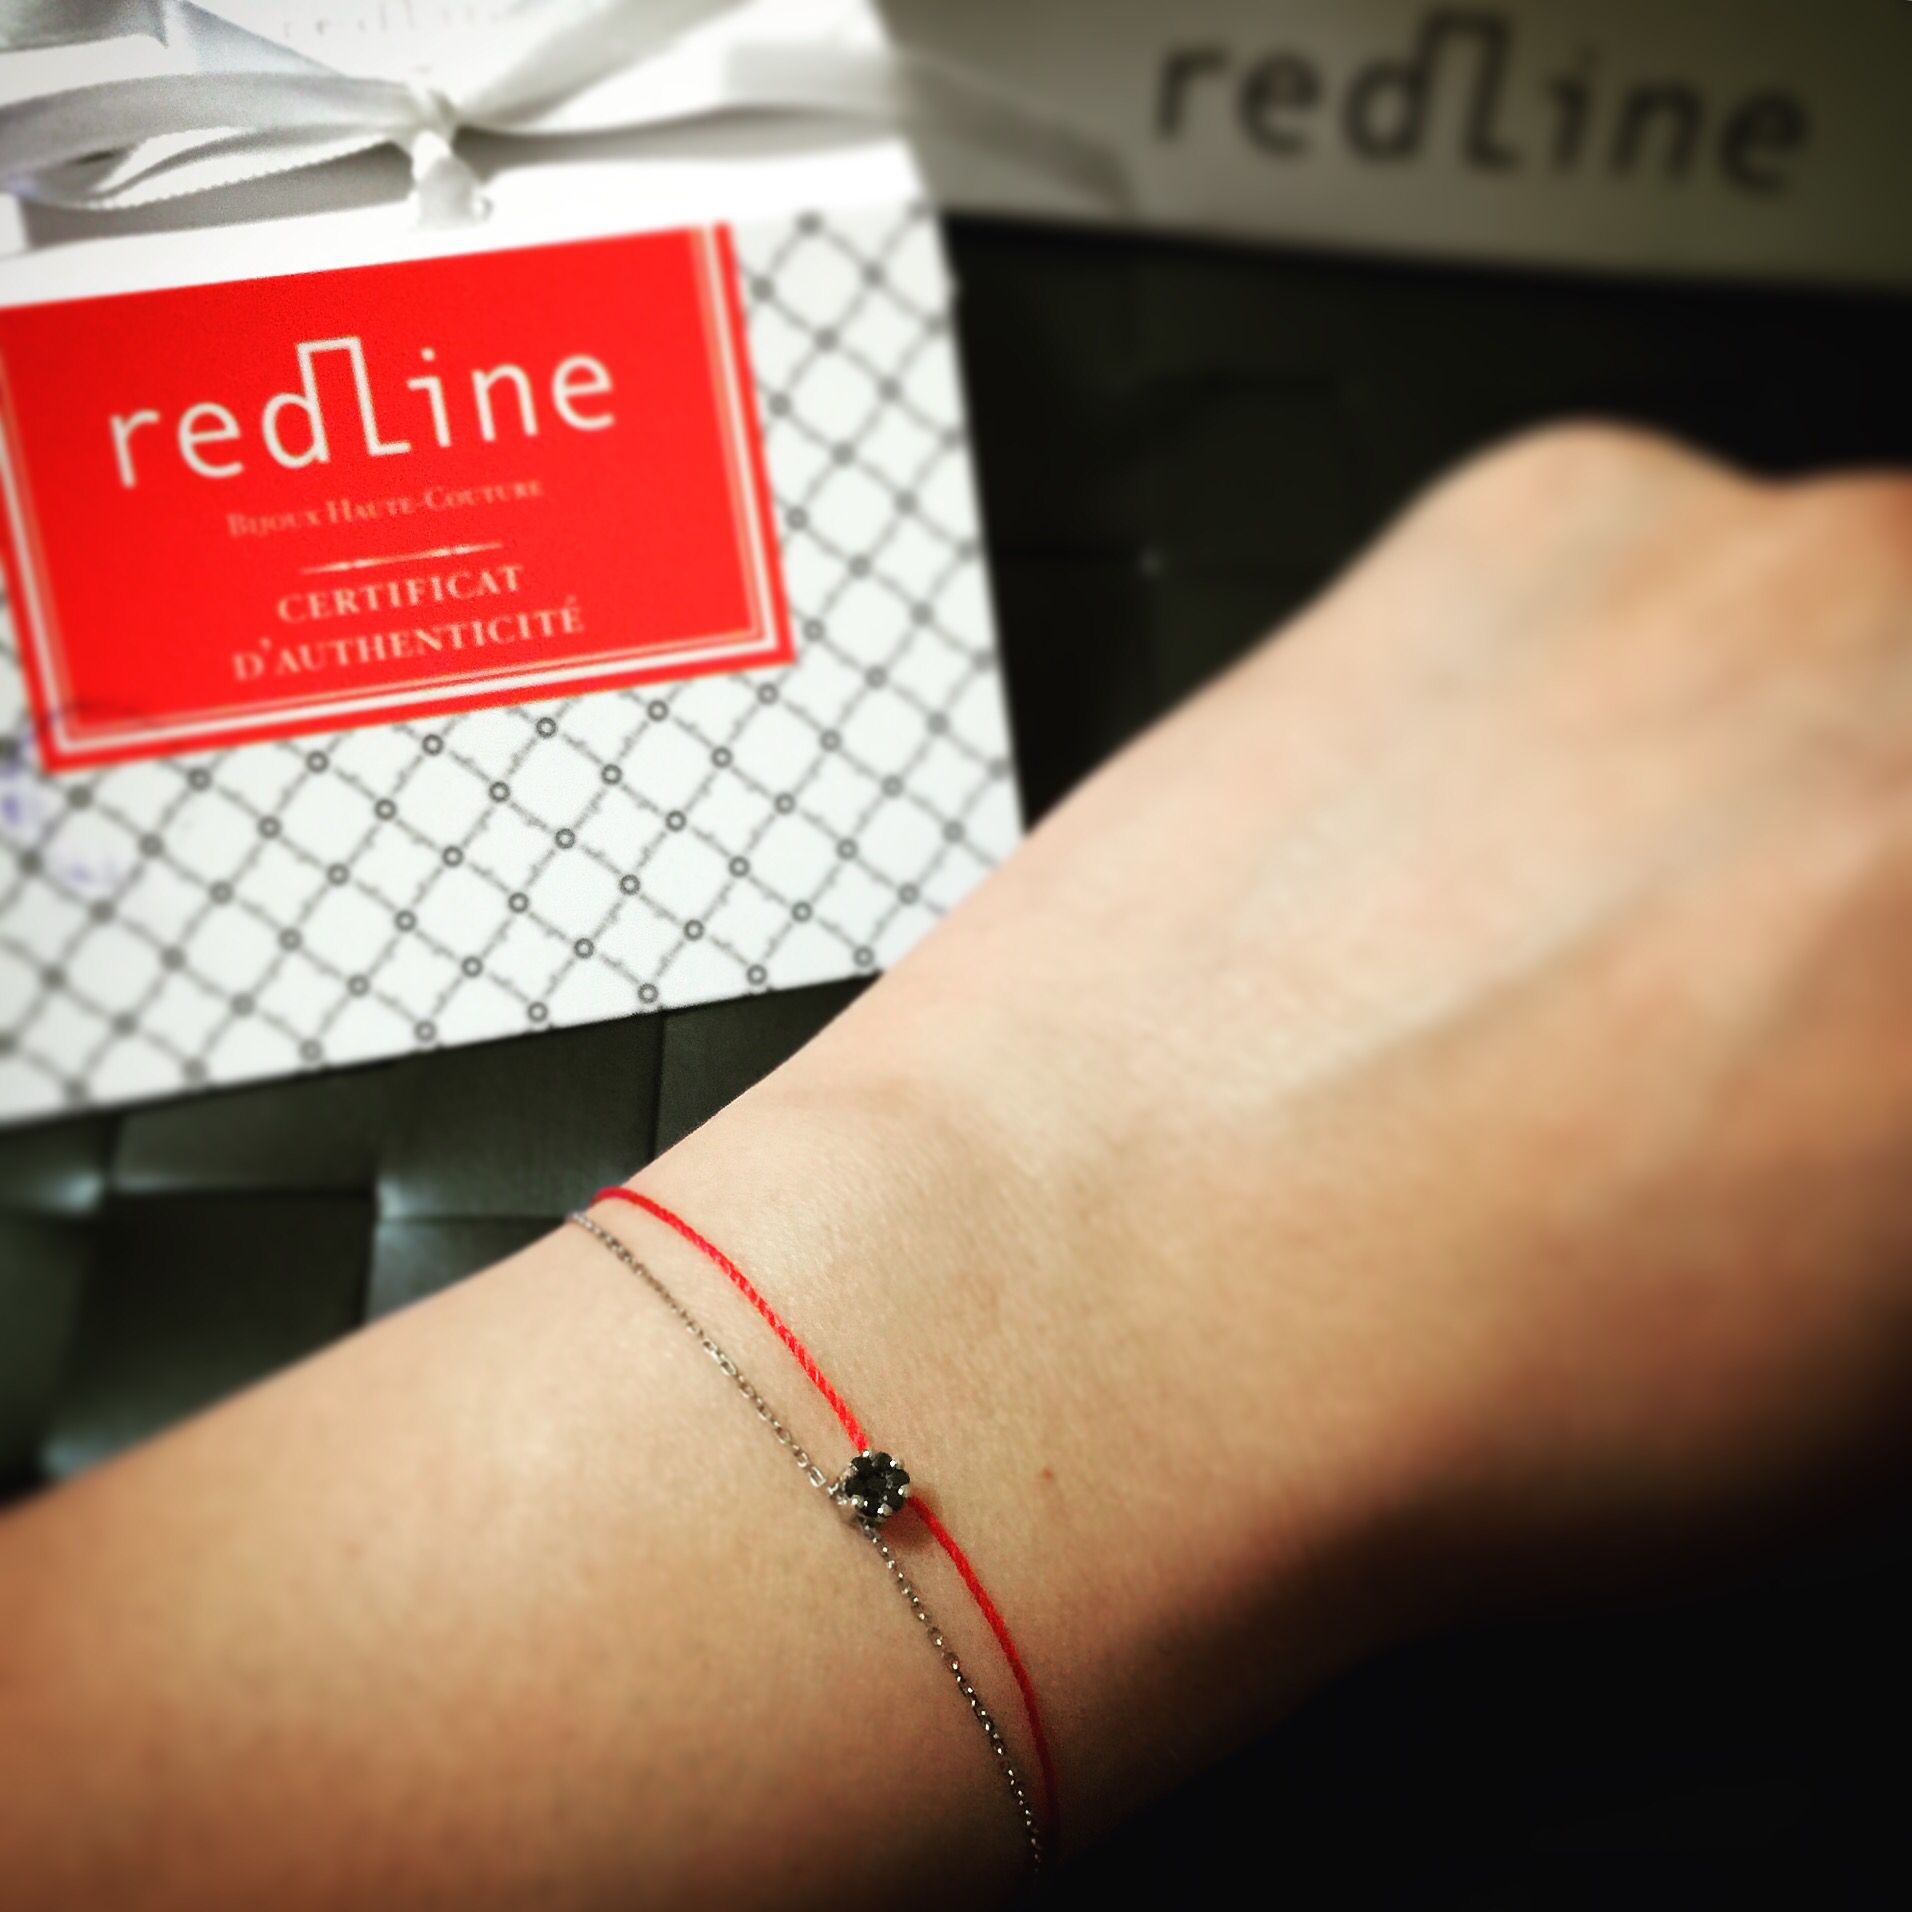 redline jo honor ocean jewellery and thread shop share gold yellow chain honoree e bracelet